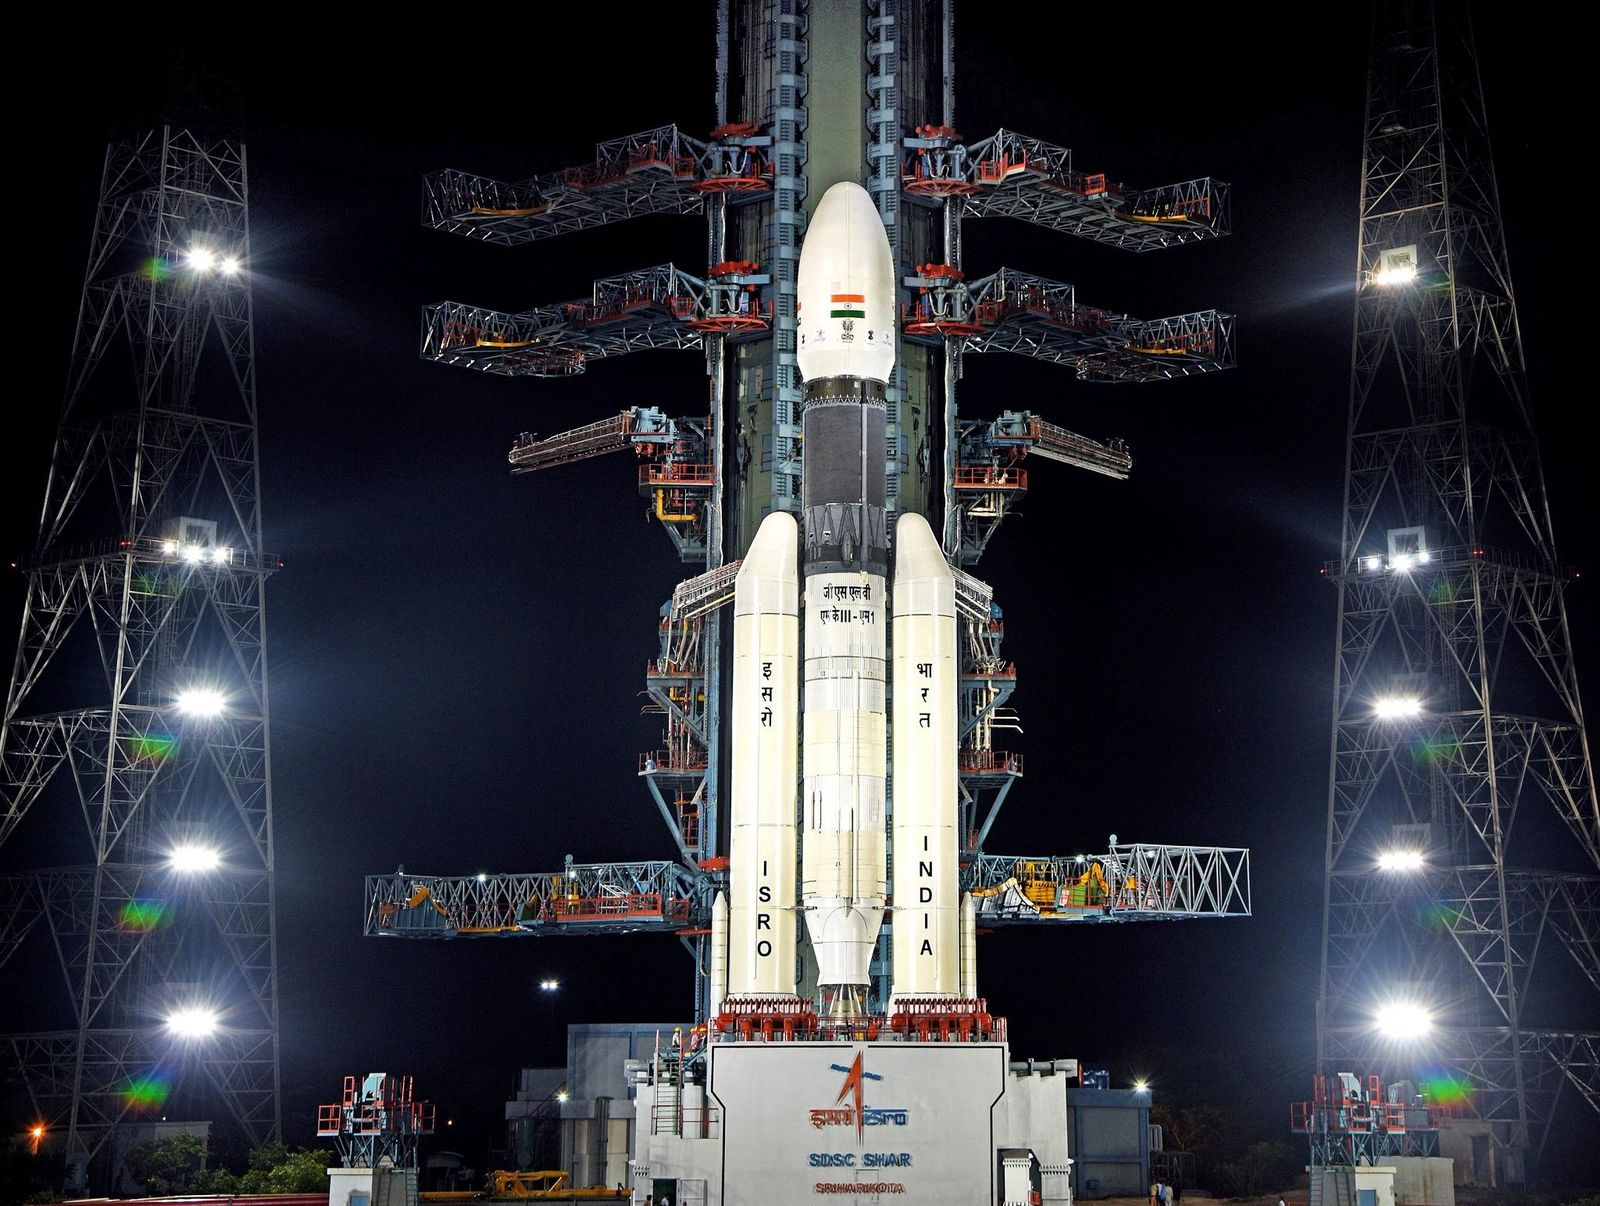 This July 2019, photo released by the Indian Space Research Organization (ISRO) shows its Geosynchronous Satellite Launch Vehicle (GSLV) MkIII-M1 at its launch pad in Sriharikota, an island off India's south-eastern coast. (Indian Space Research Organization via AP)